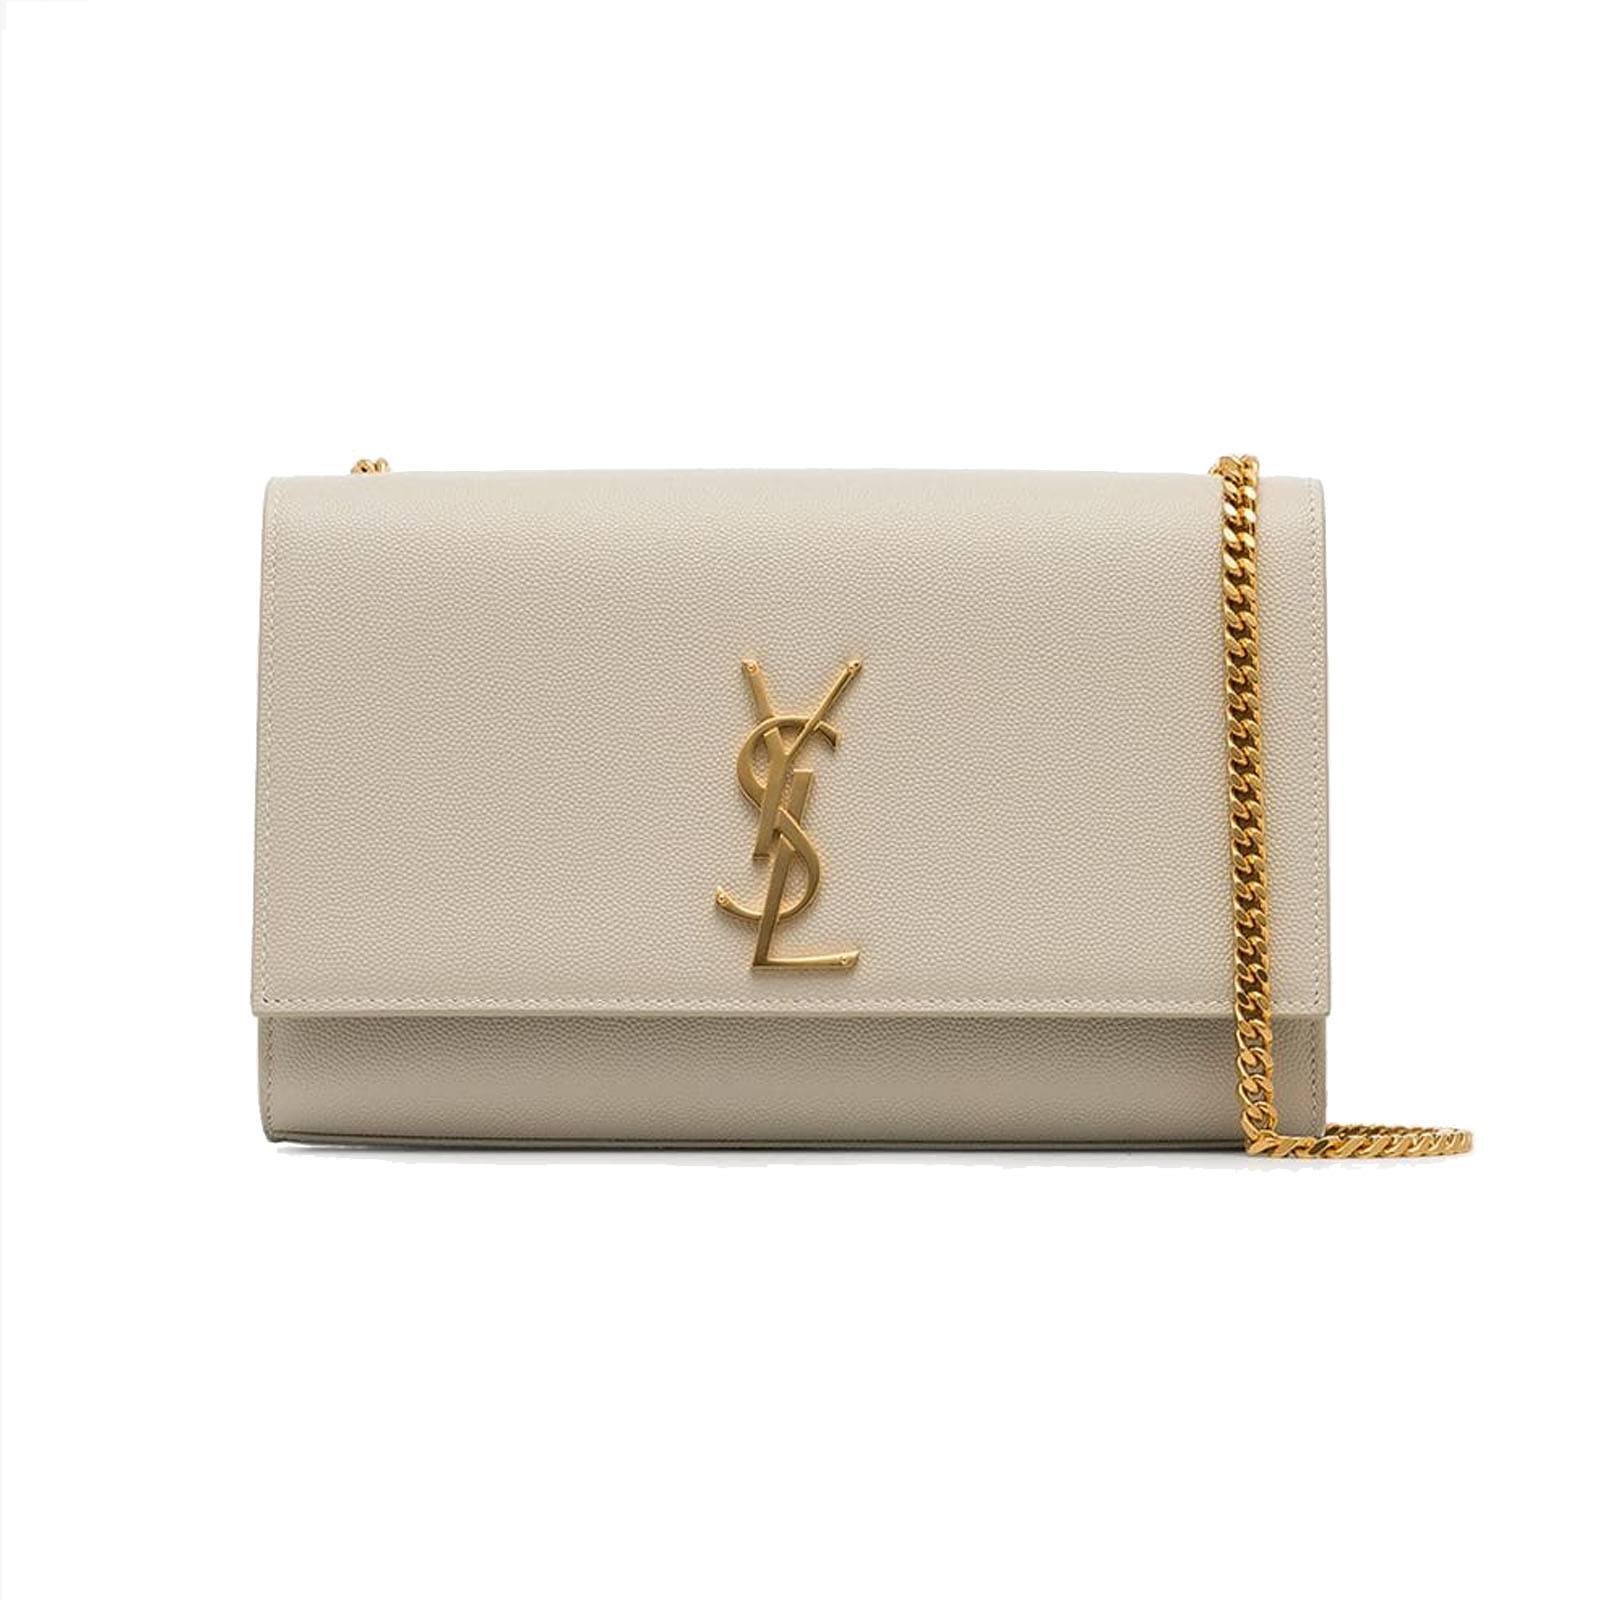 55cef7dd0a3 saint laurent ysl kate bag medium in nude powder with gold hardware authentic  second hand